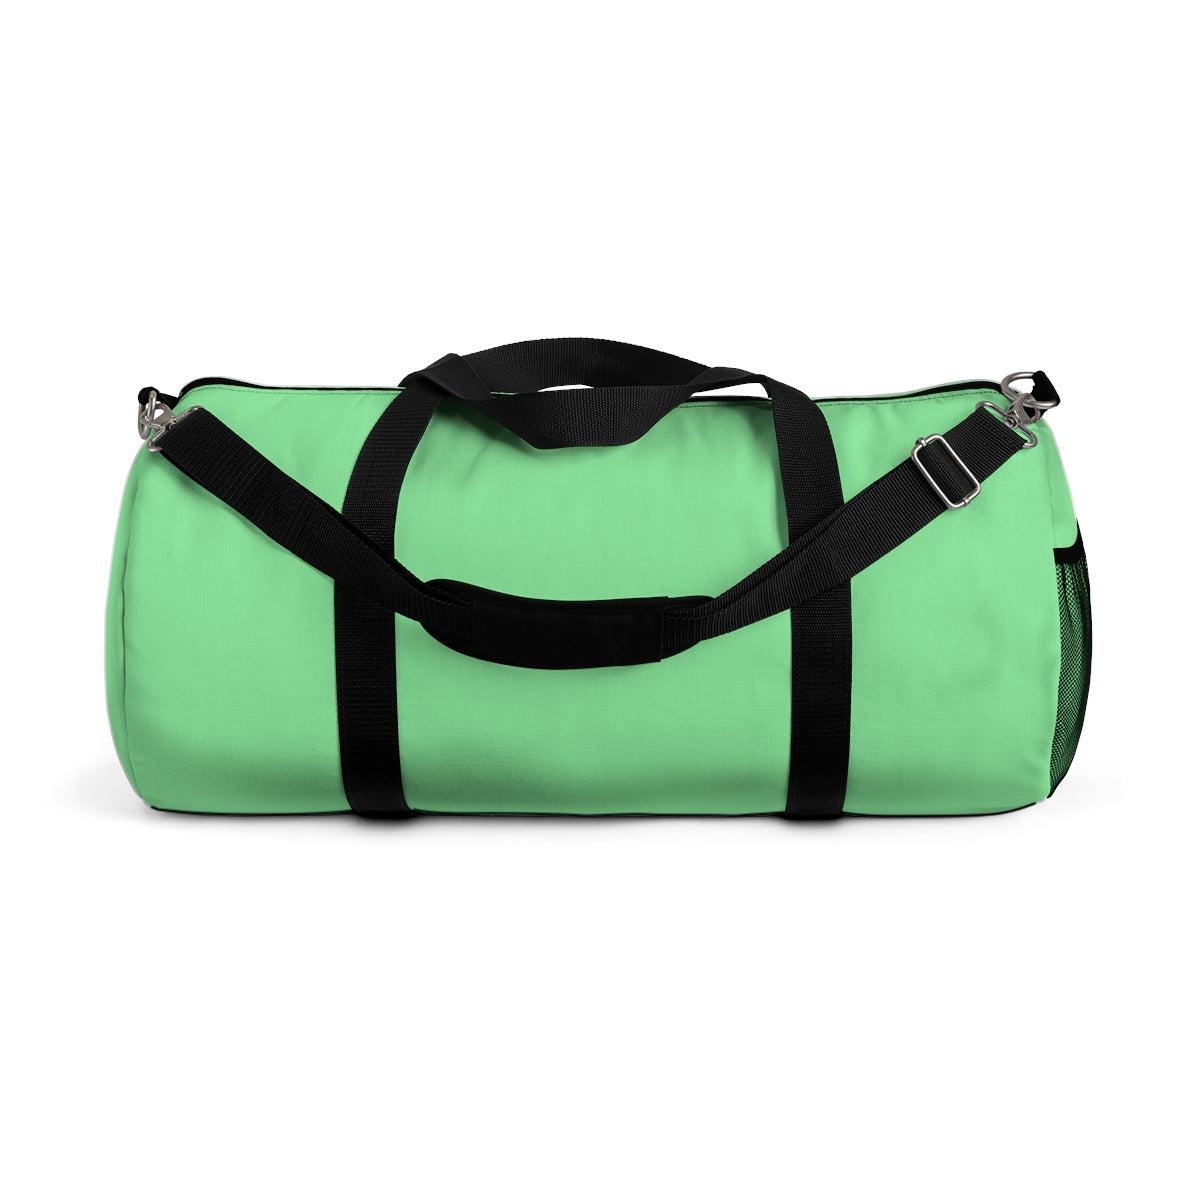 Pastel Mint Green Solid Color All Day Small Or Large Size Duffel Bag, Made in USA-Duffel Bag-Small-Heidi Kimura Art LLC